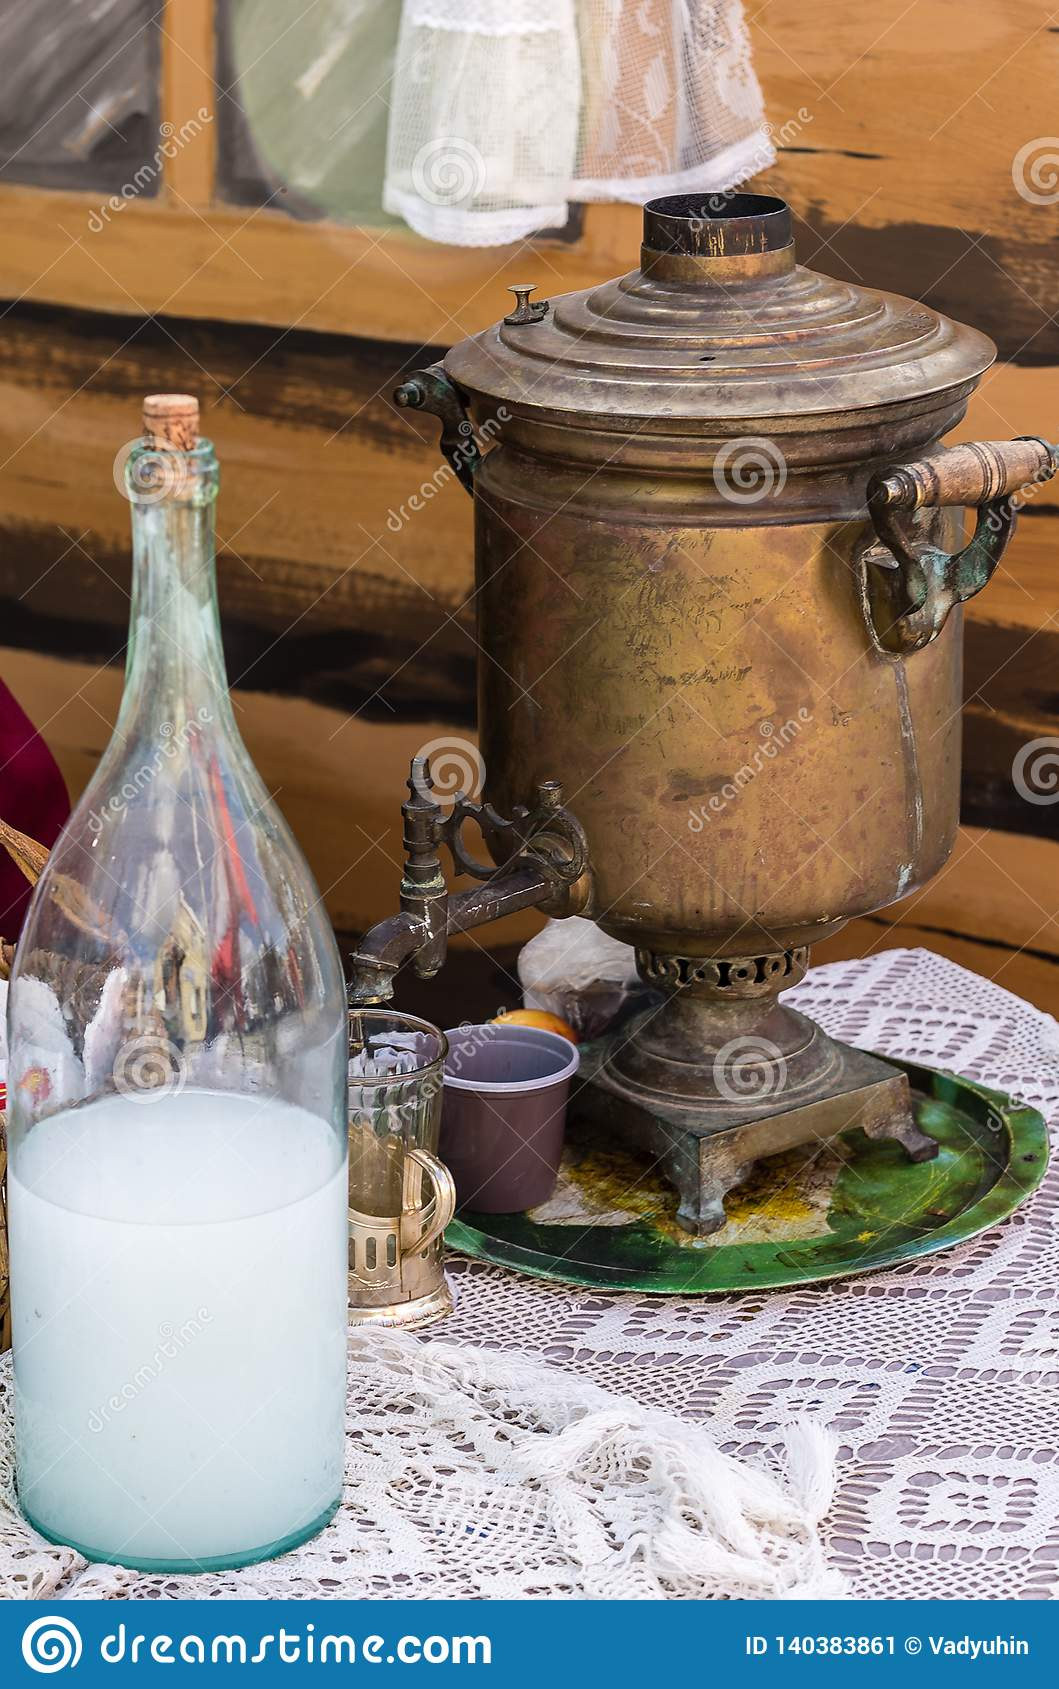 Samovar and moonshine bottle on a lace tablecloth